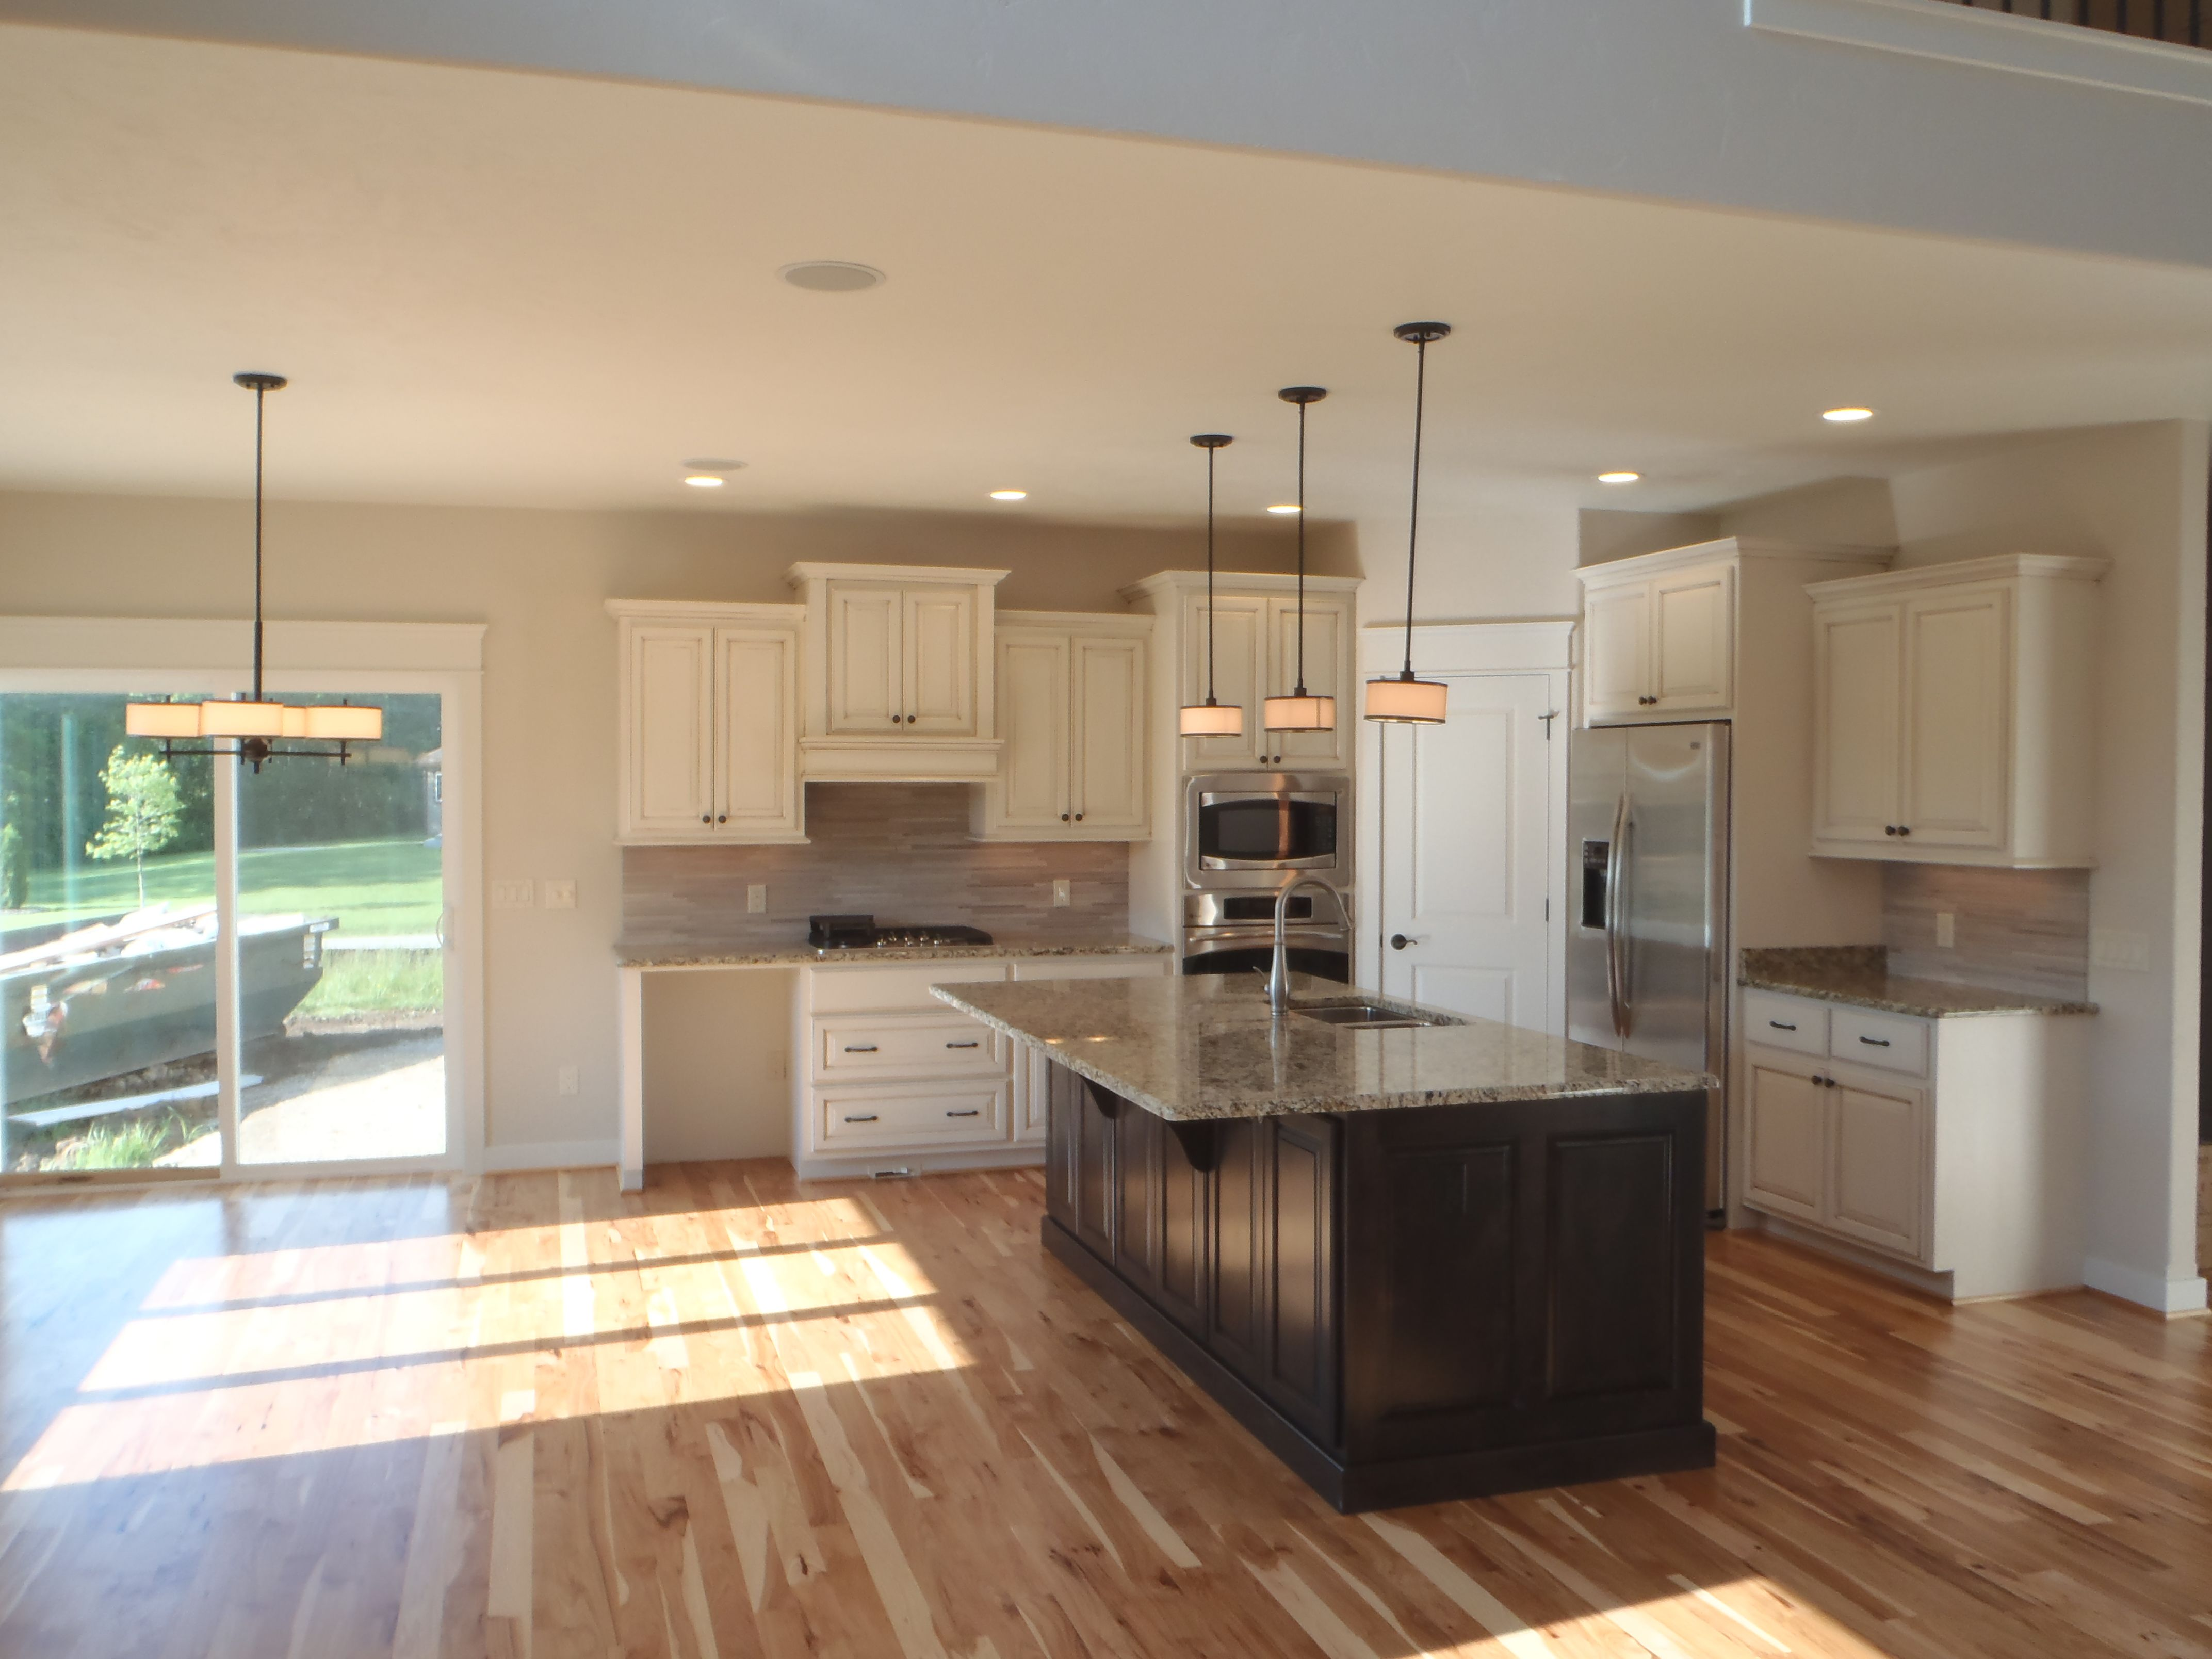 Pin By Carstensen Homes On Kitchens House Design Kitchen Lake House Kitchen Kitchen Floor Plans